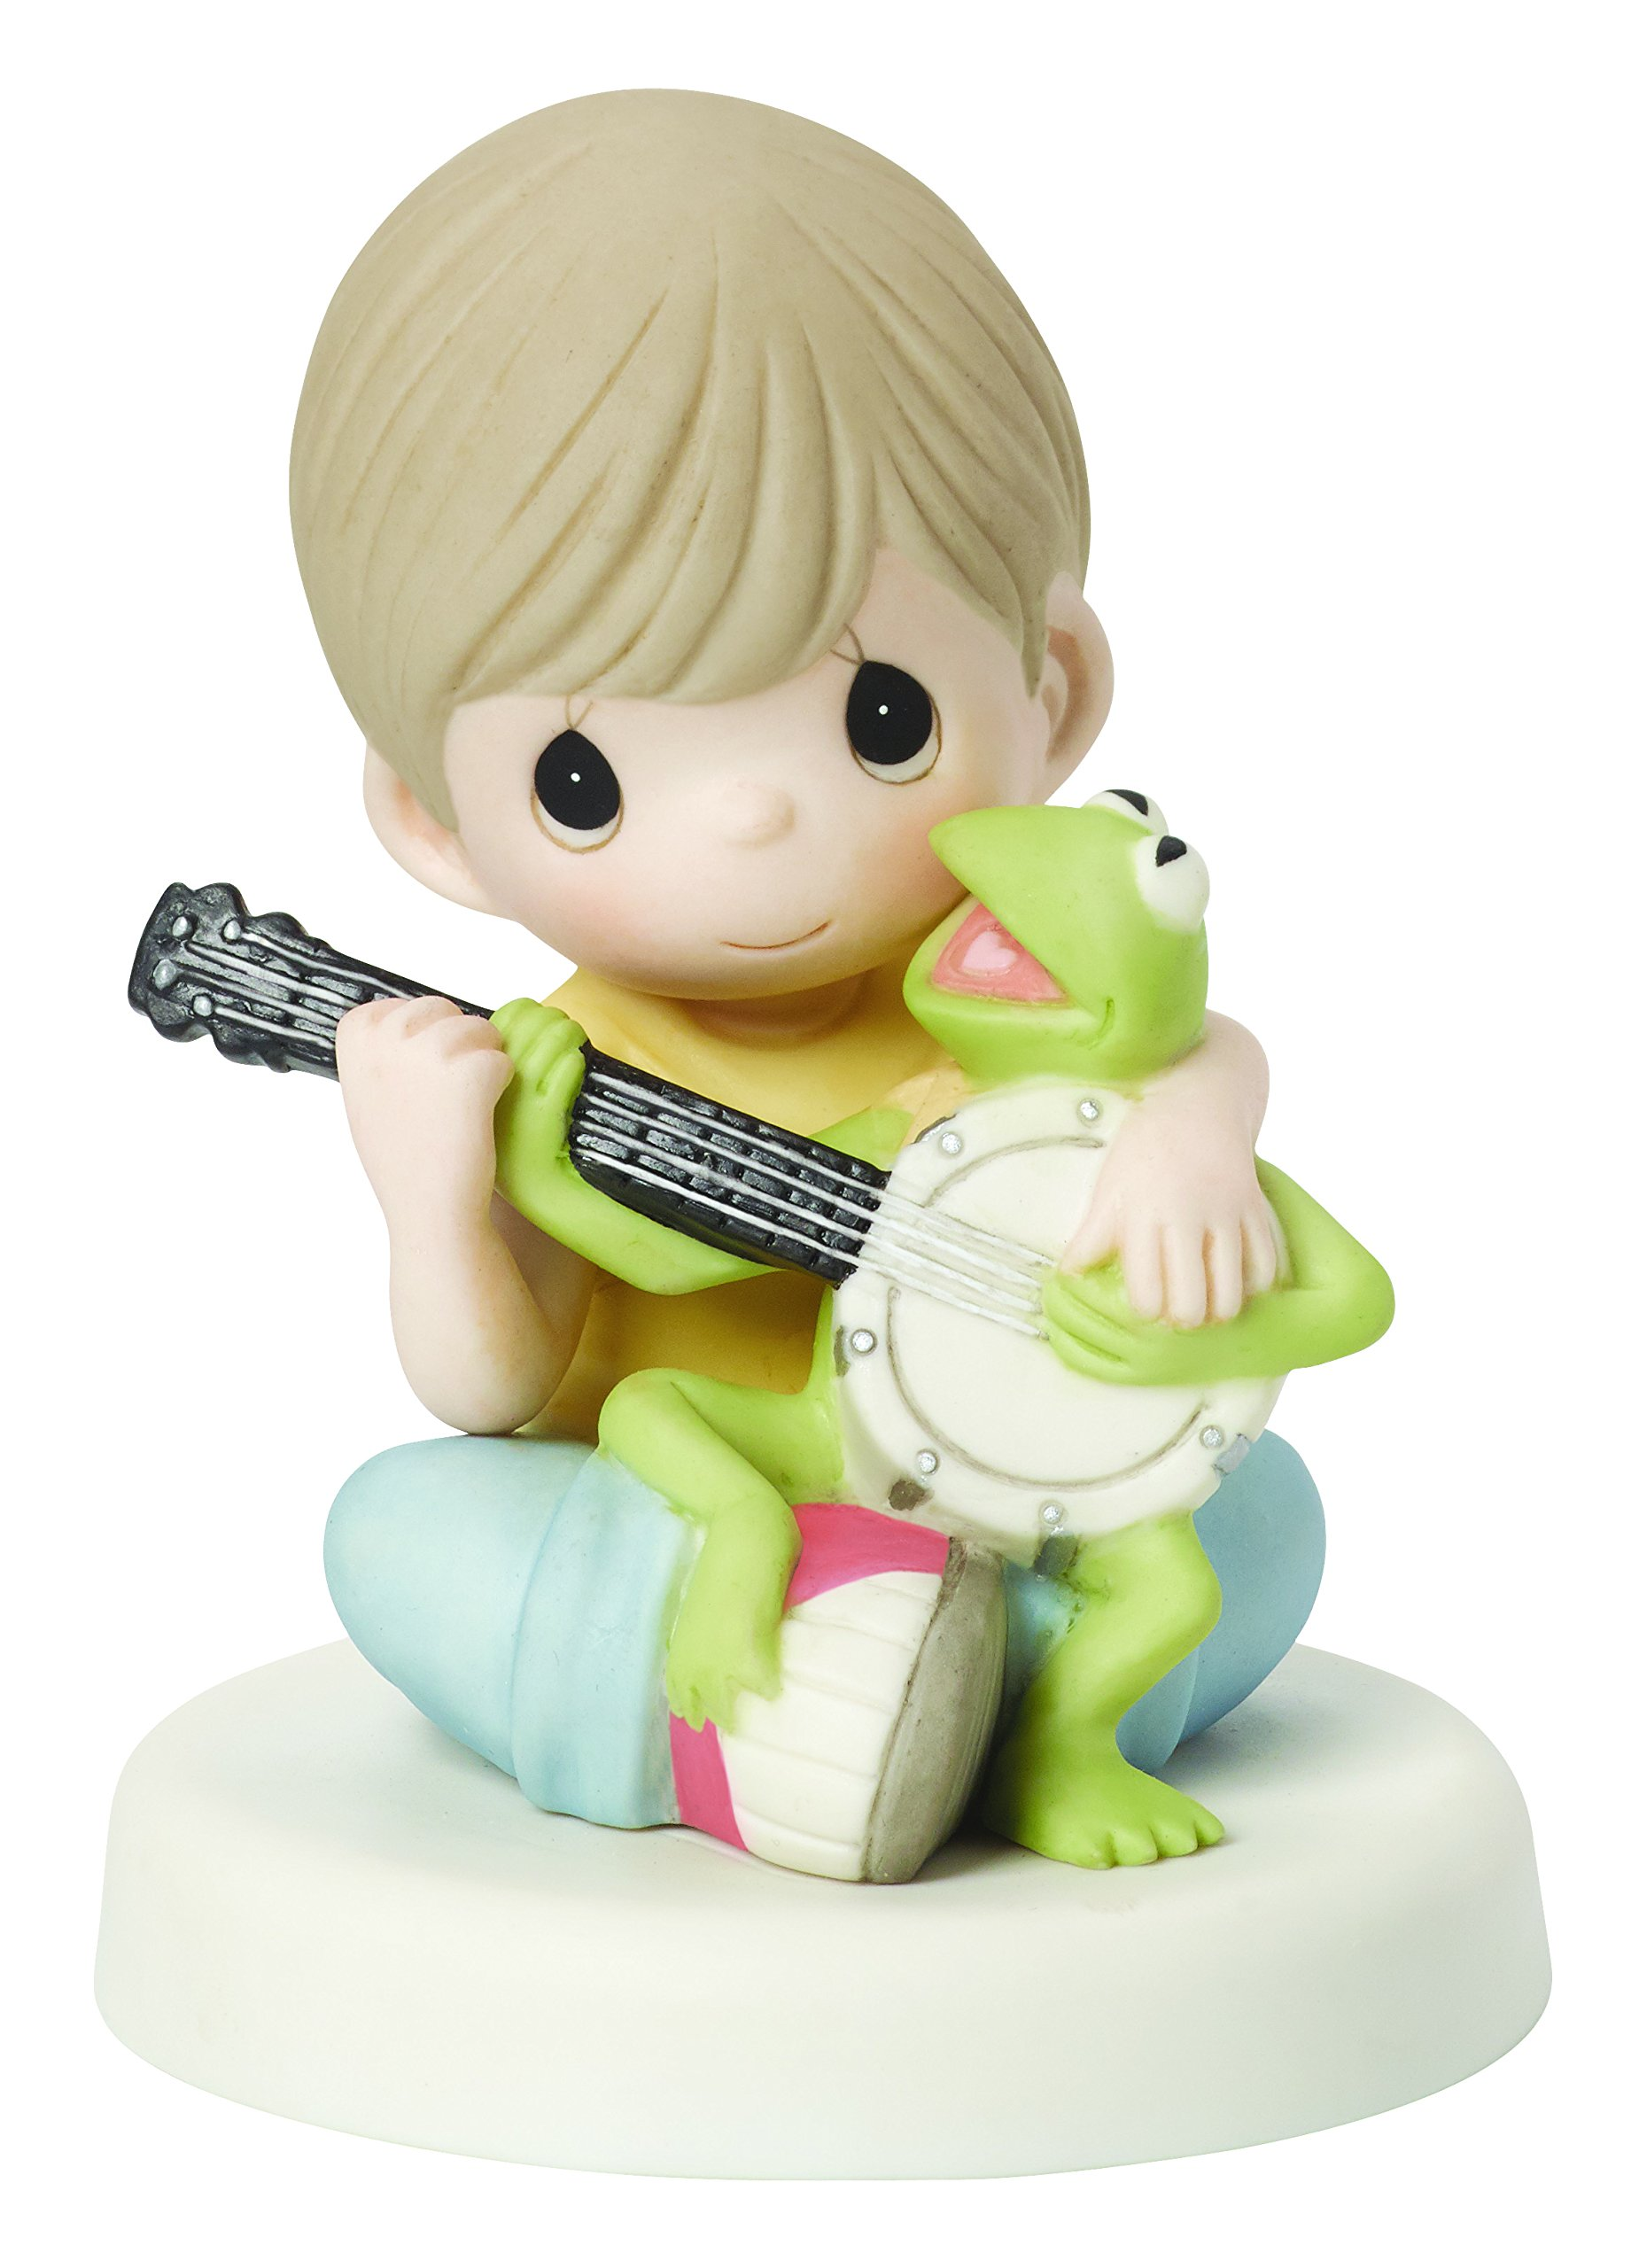 Precious Moments, Disney The Muppets, Music Is What Friendship Sounds Like Bisque Porcelain Figurine, Kermit, 154015